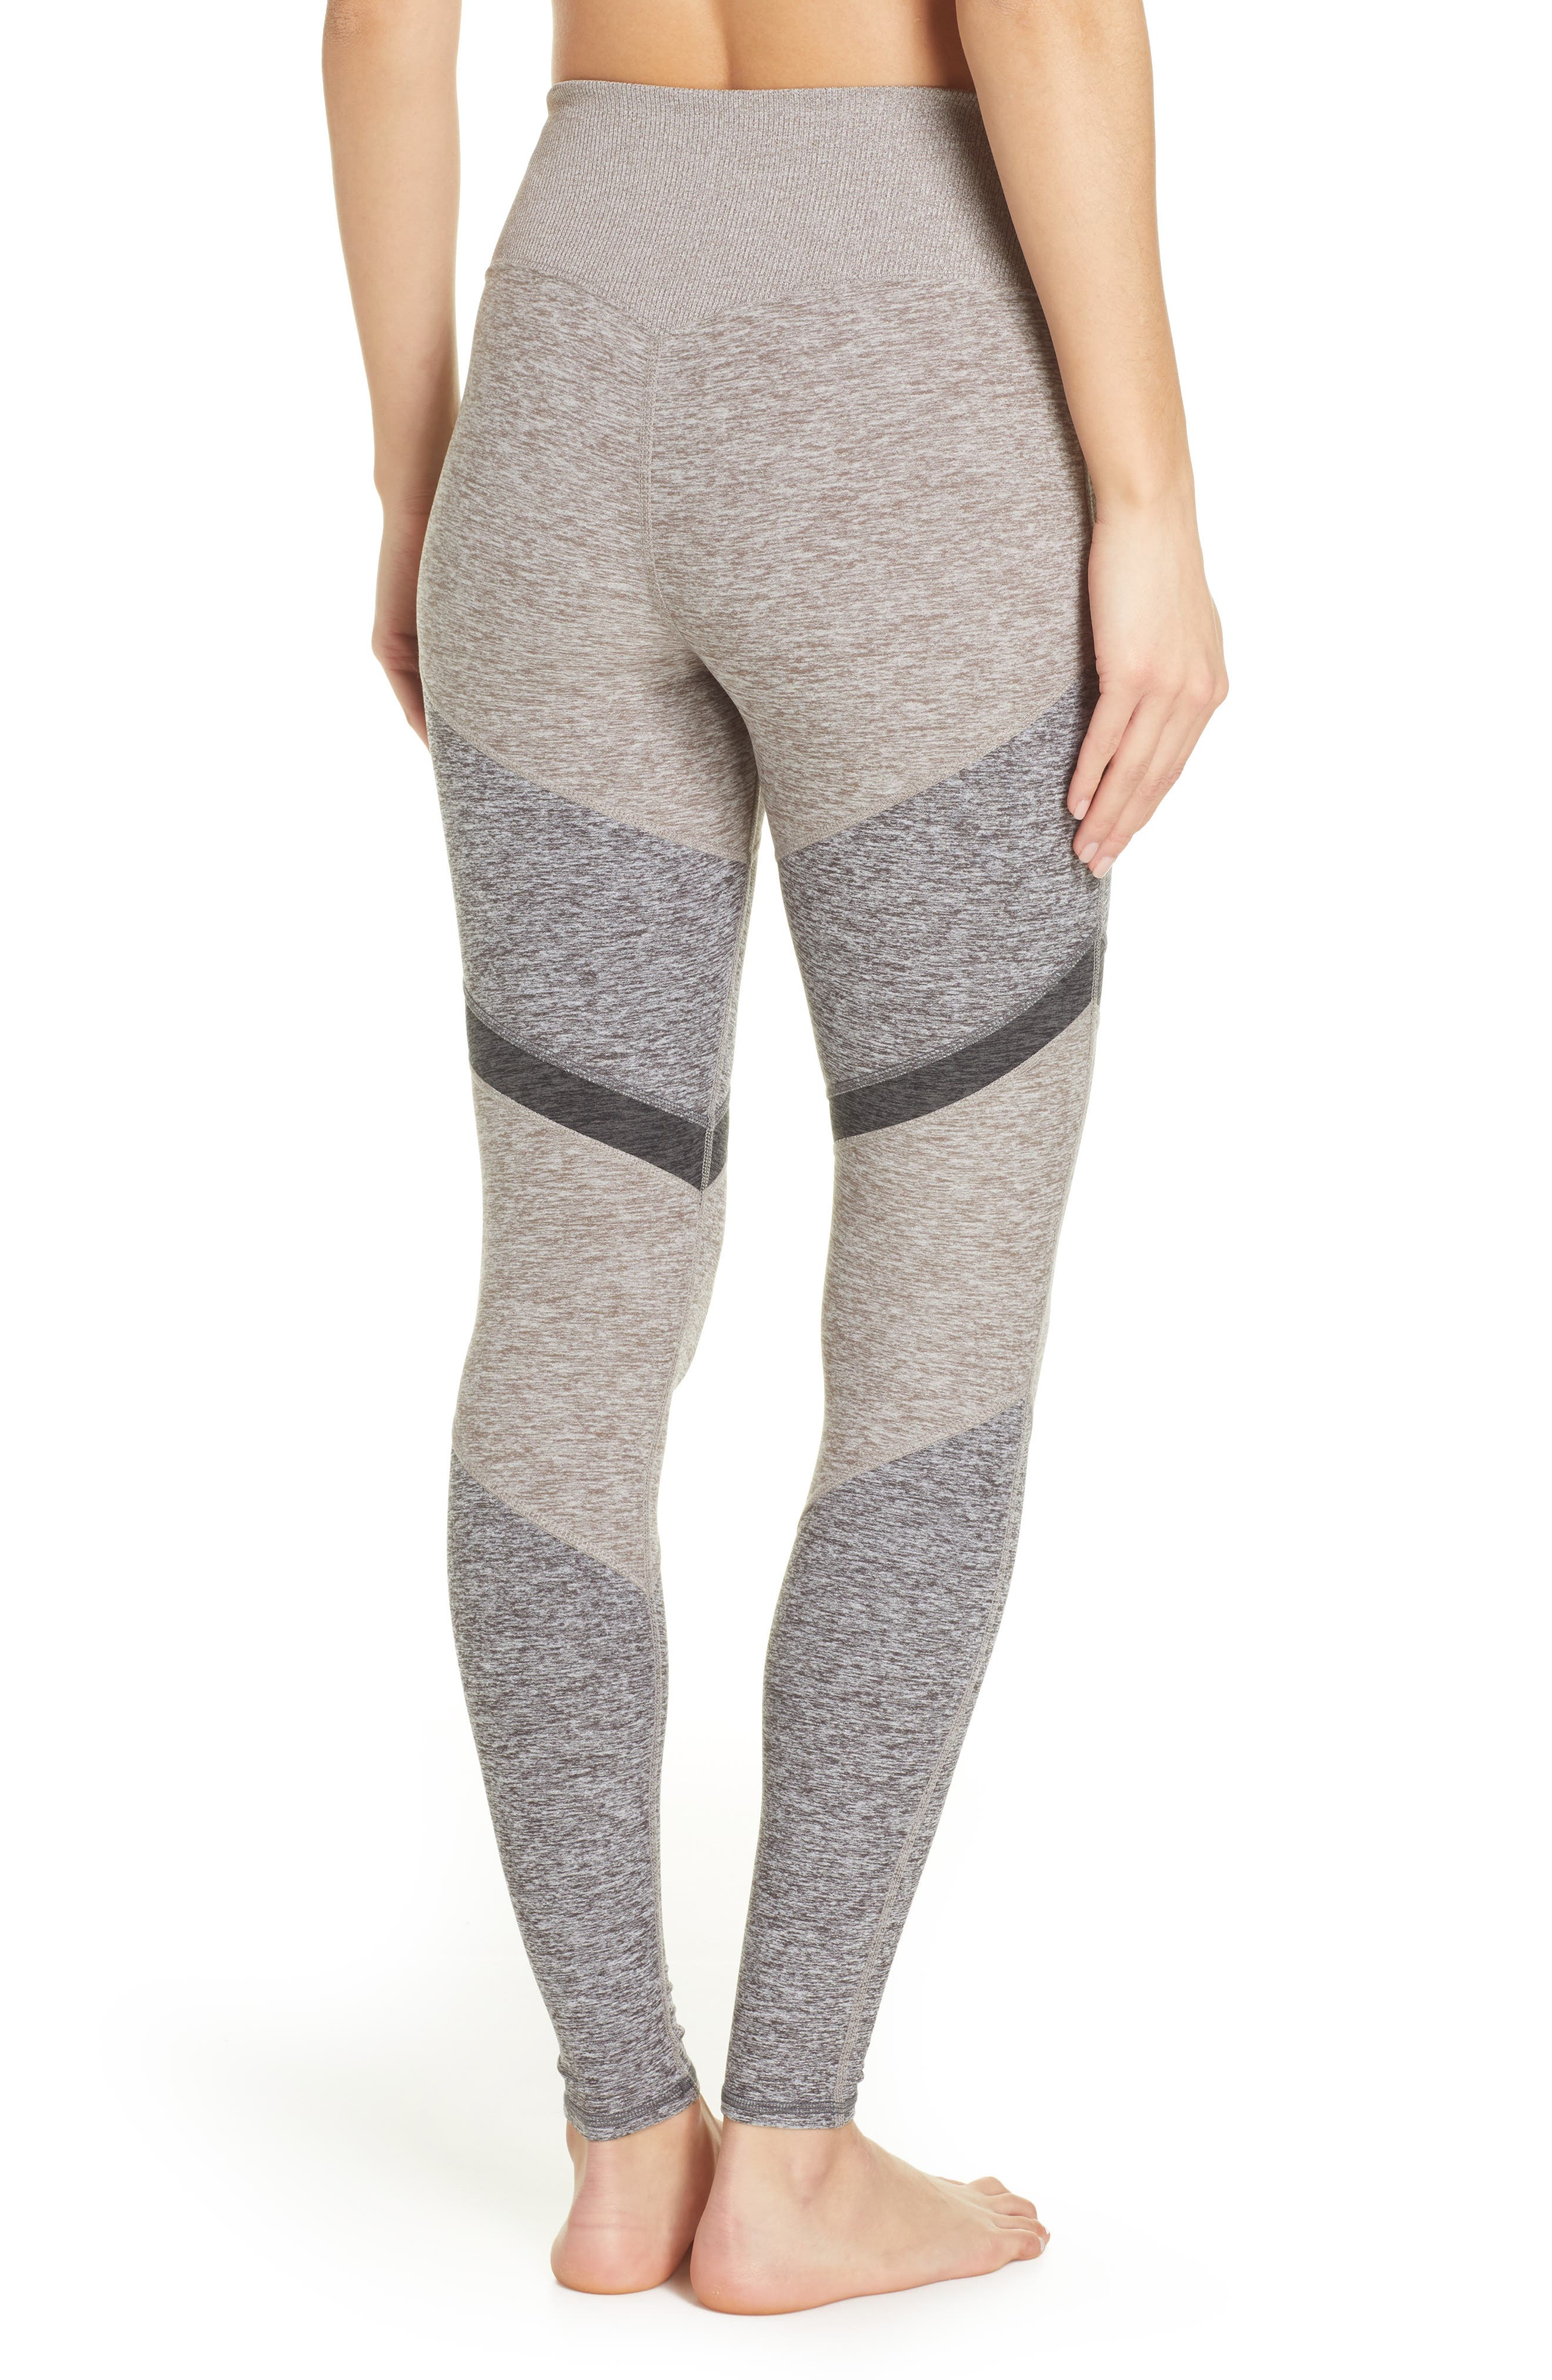 ALO, Sheila Alosoft High Waist Leggings, Alternate thumbnail 2, color, GRAVEL HEATHER/ DOVE GREY